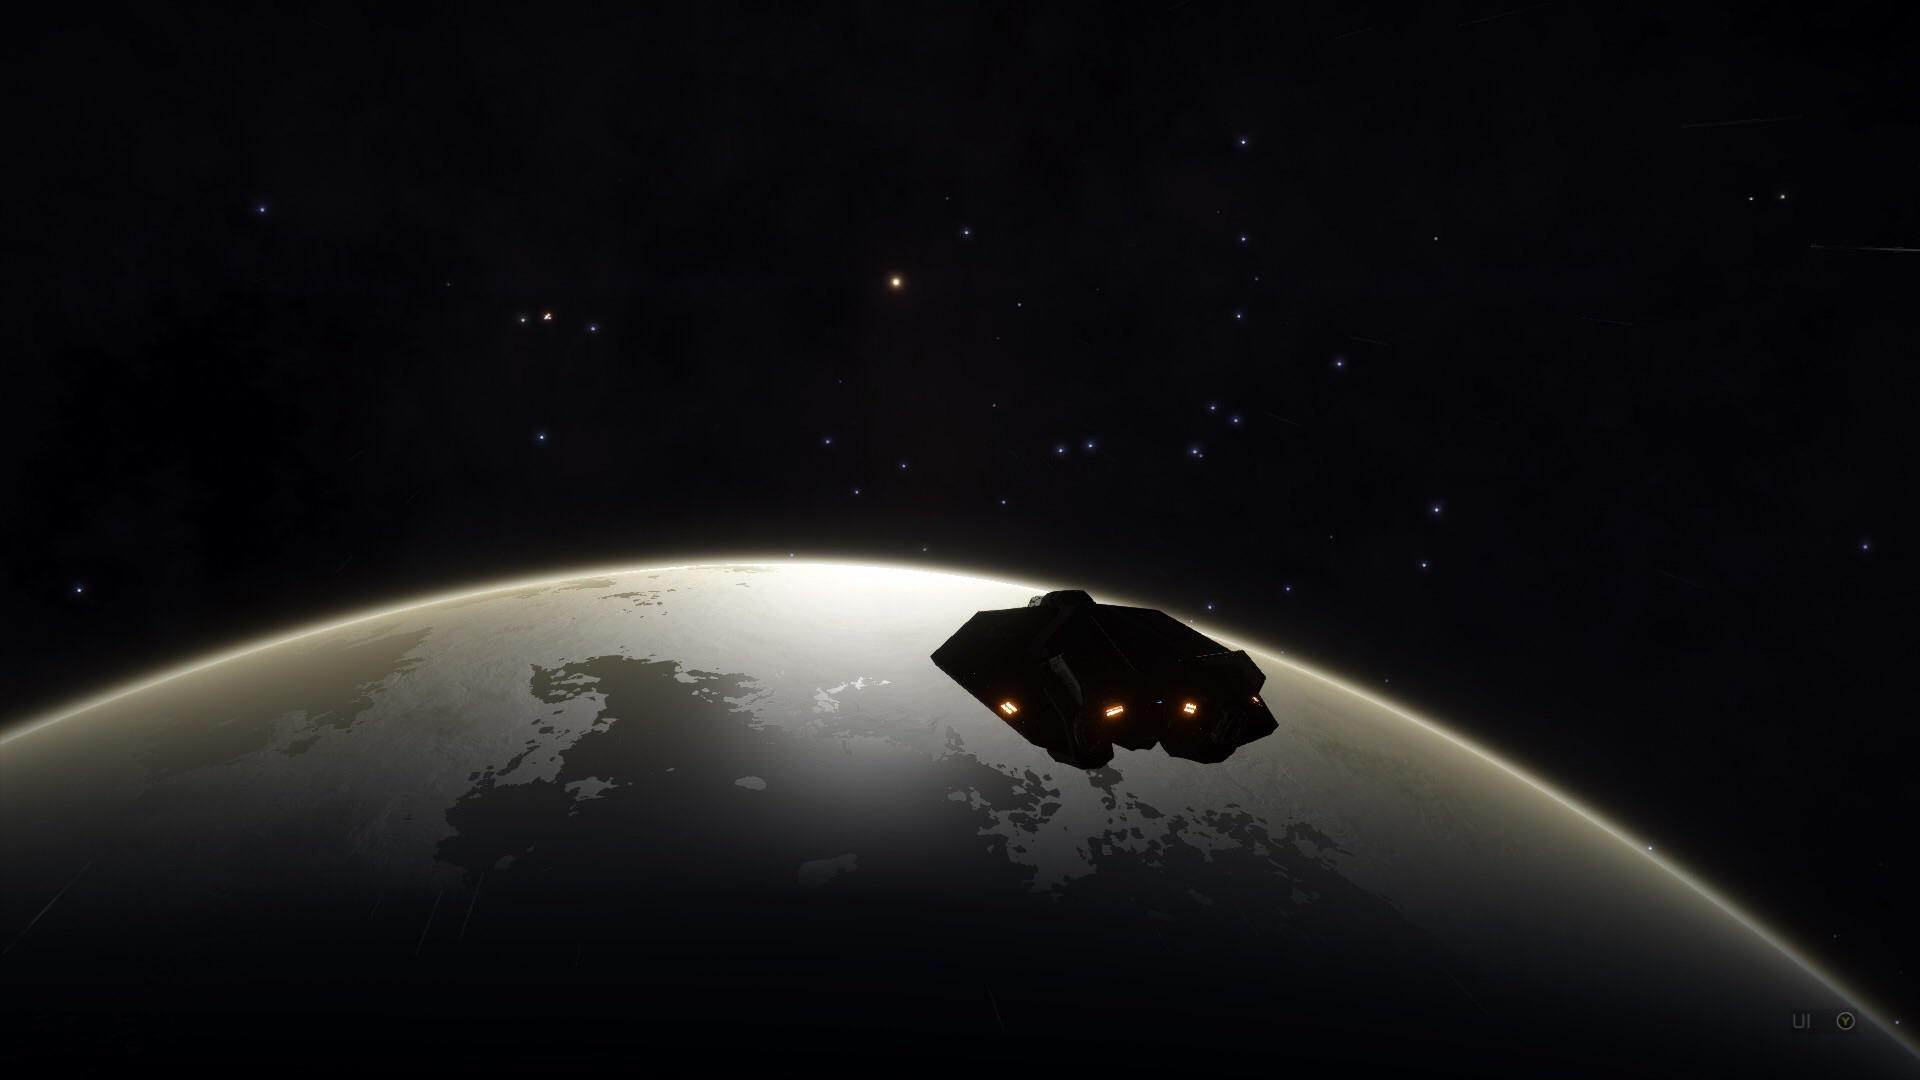 Elite Dangerous Screenshots - Approaching A Planet